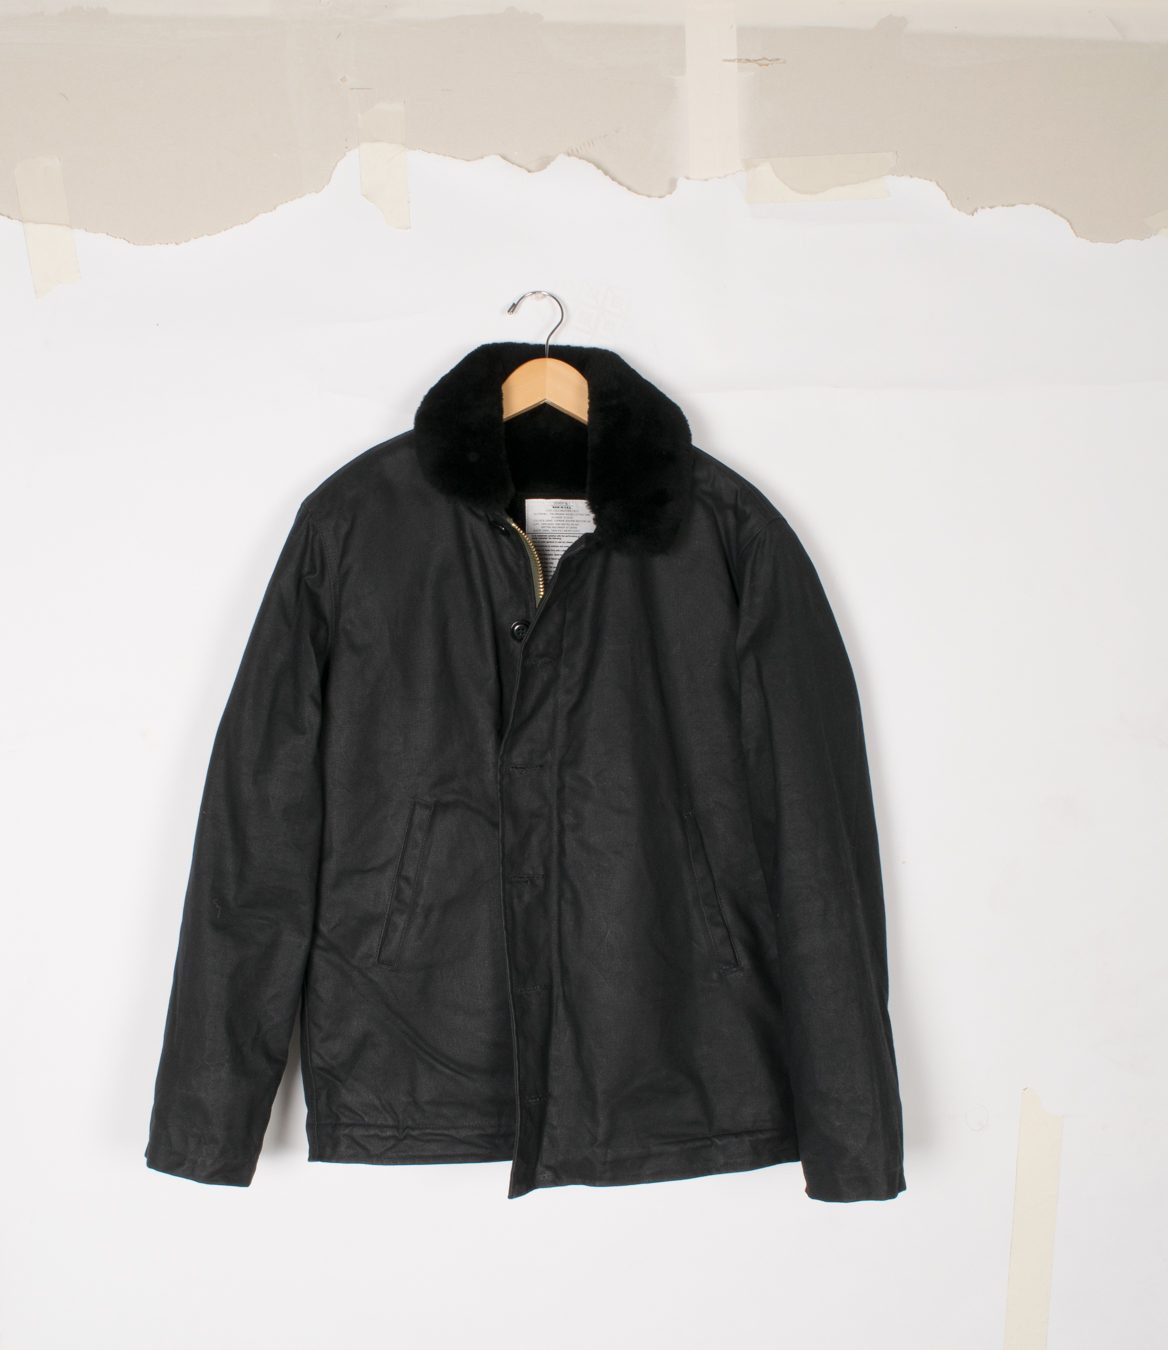 N-1 Deck Jacket - Black/Black - $1250